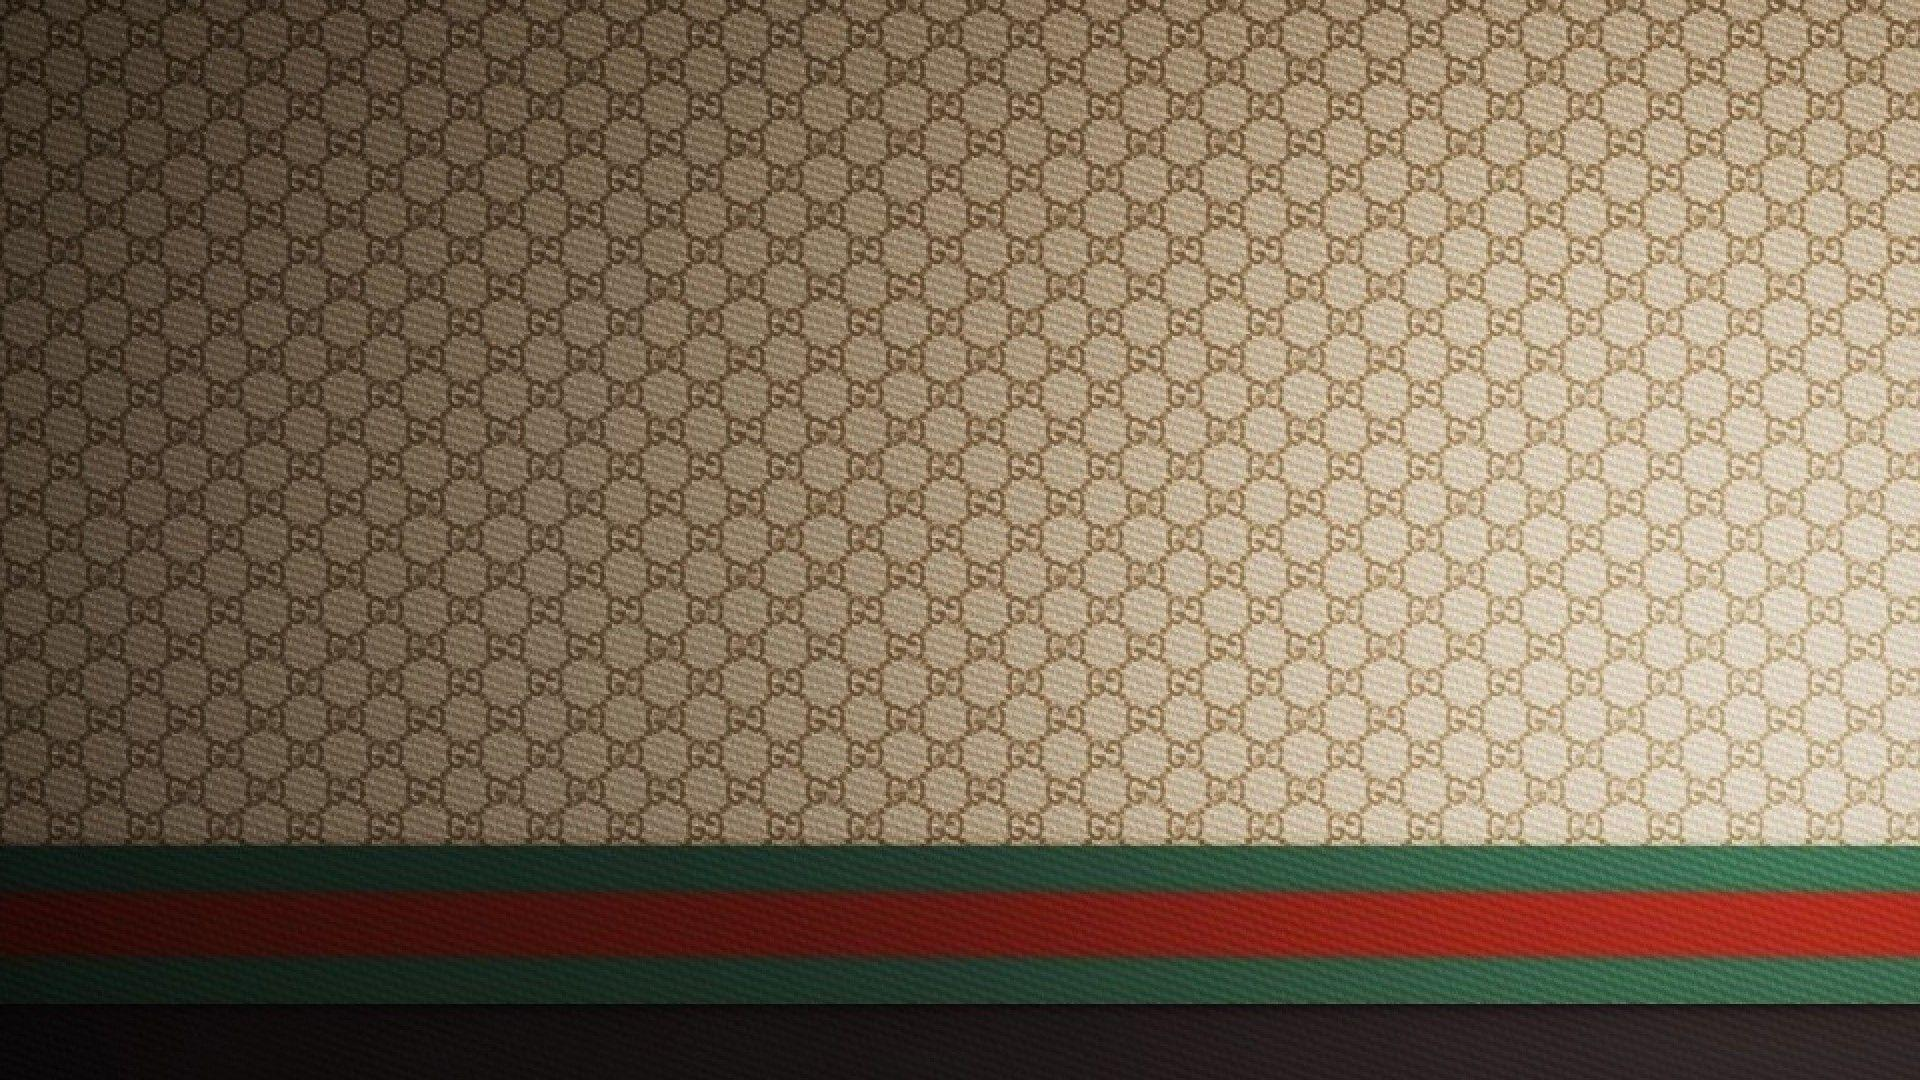 gucci wallpaper for computer - photo #27